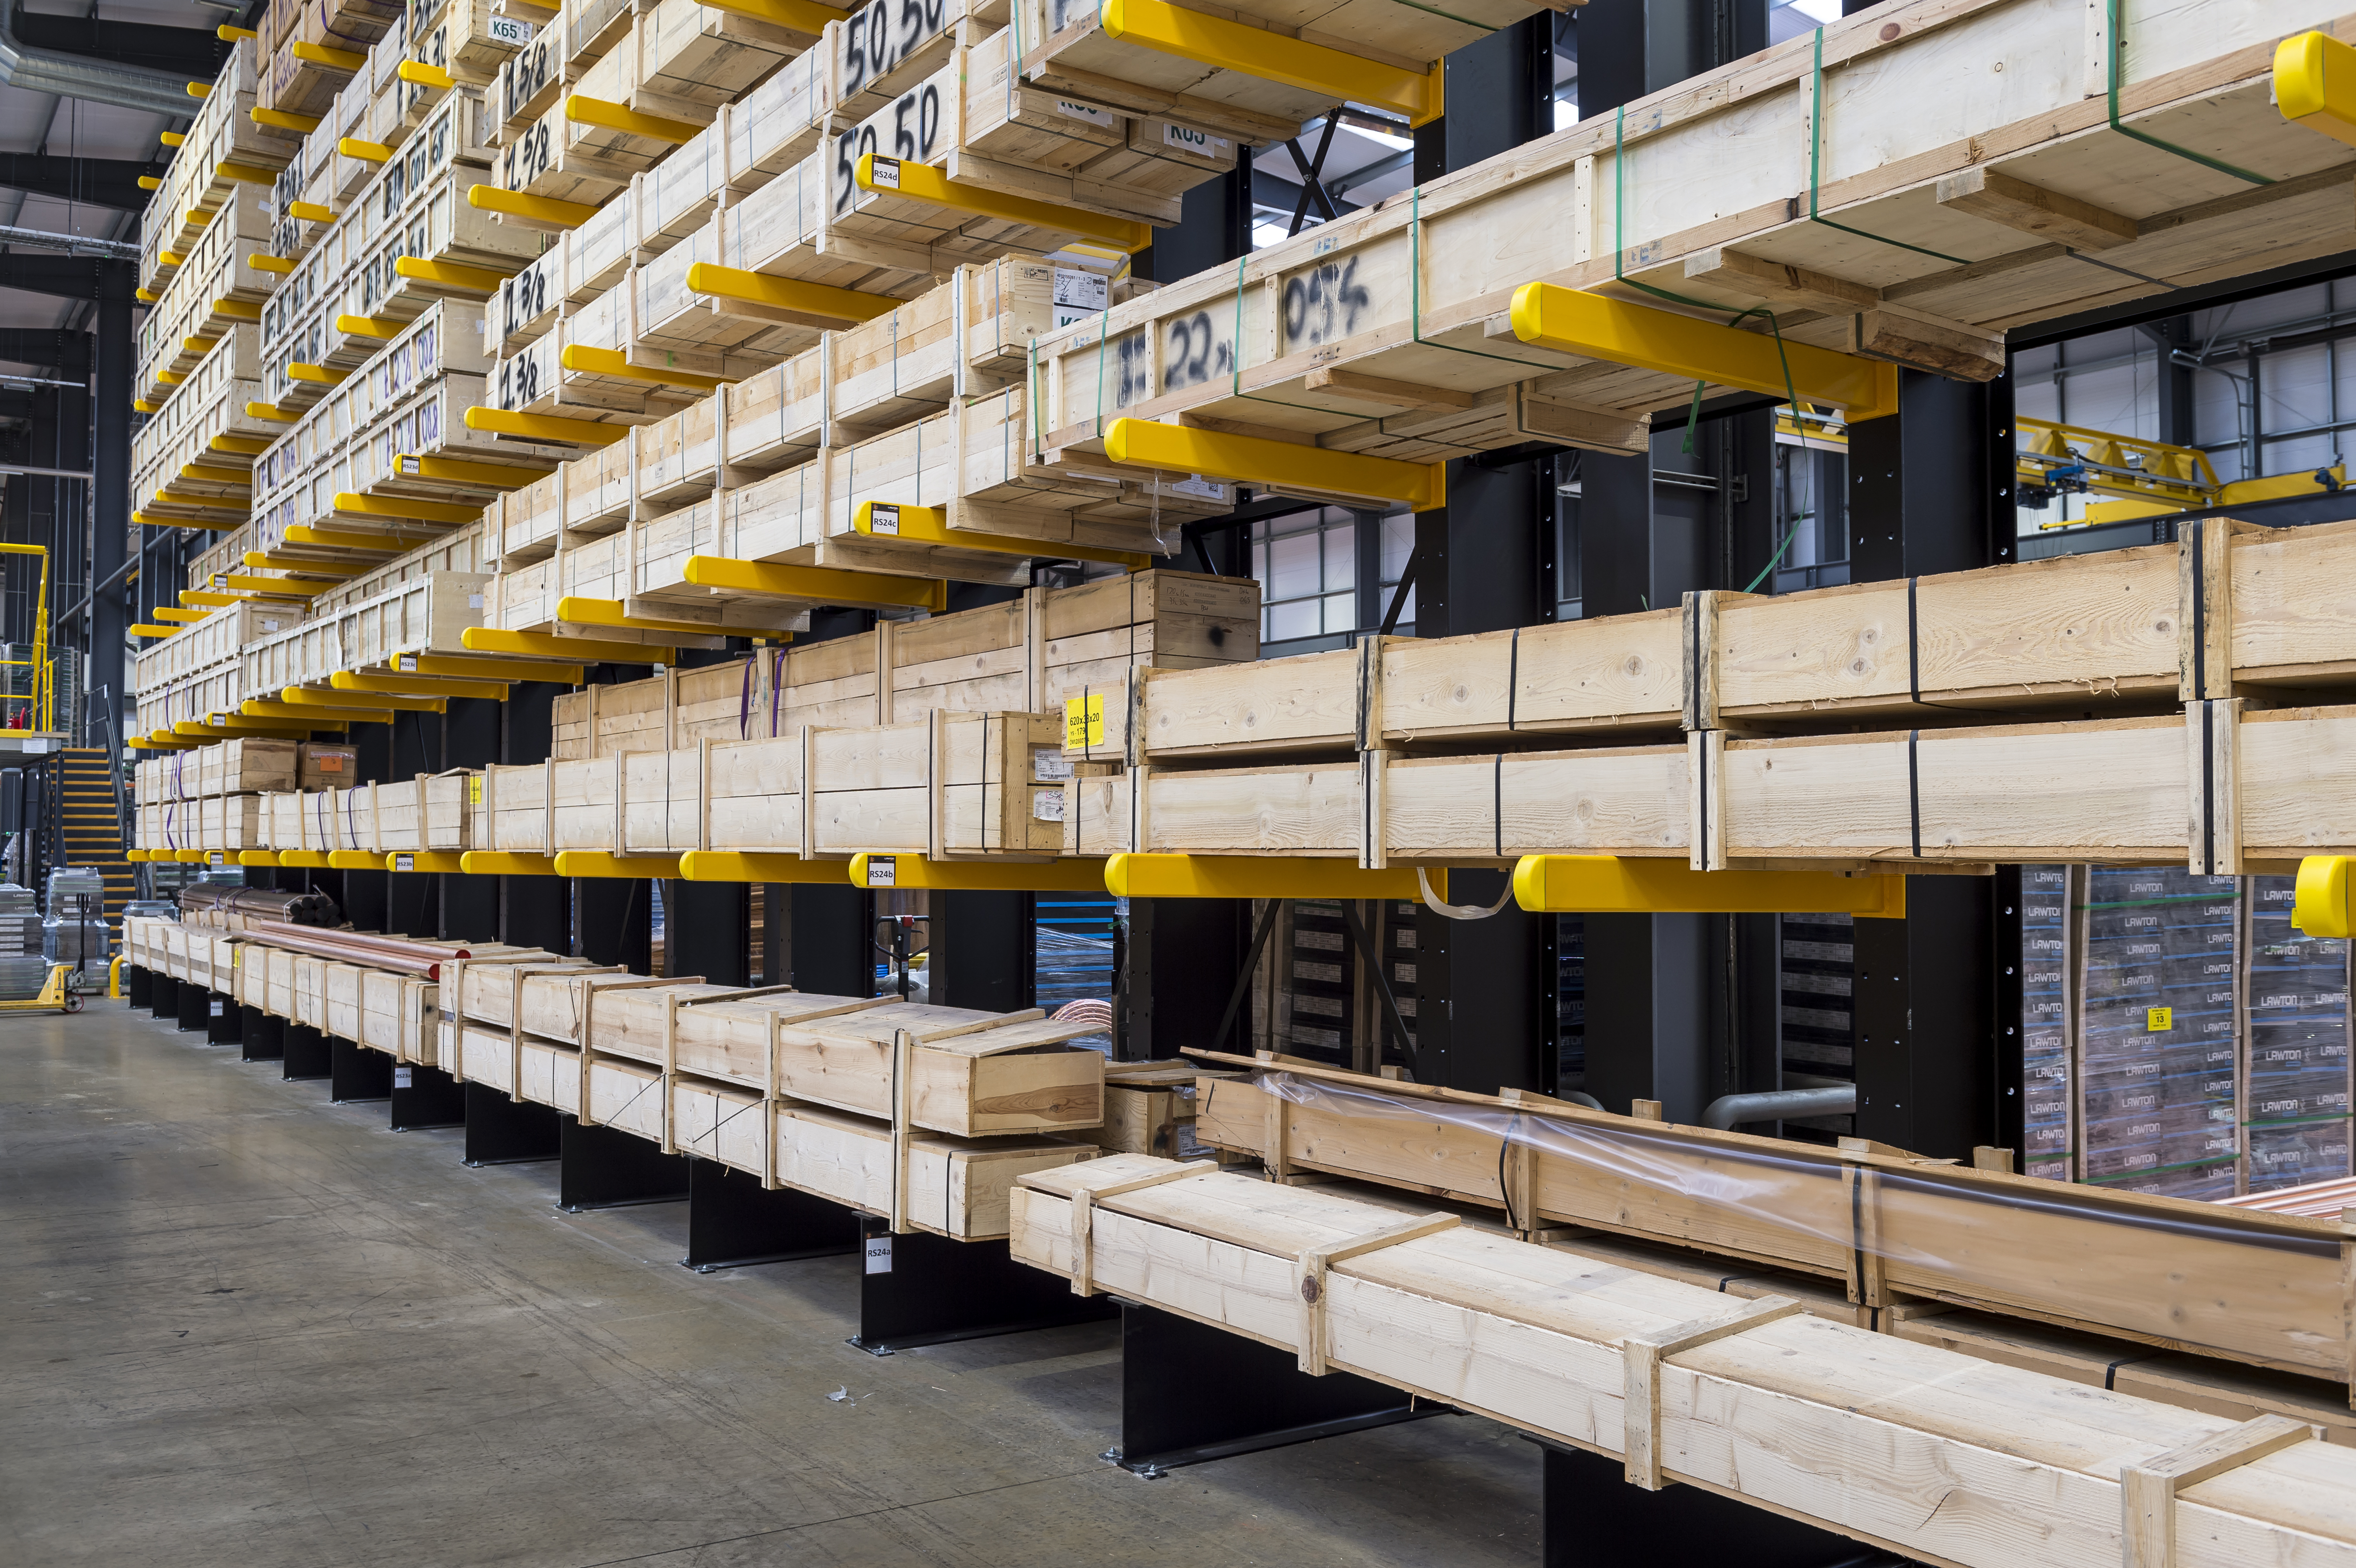 Project Management from Warehouse Storage Solutions